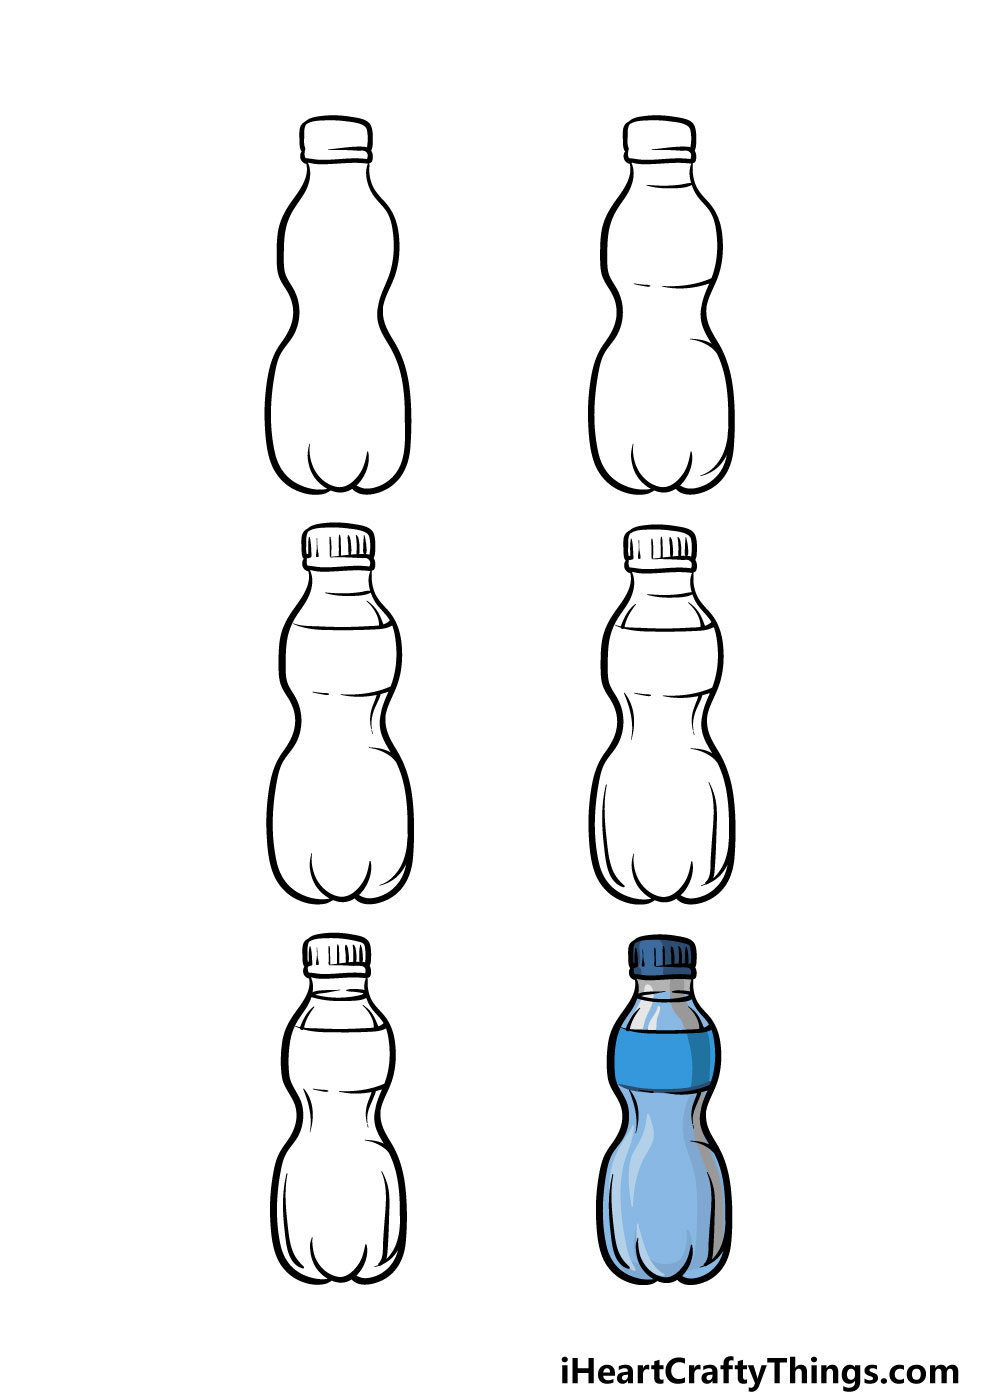 how to draw a water bottle in 6 steps